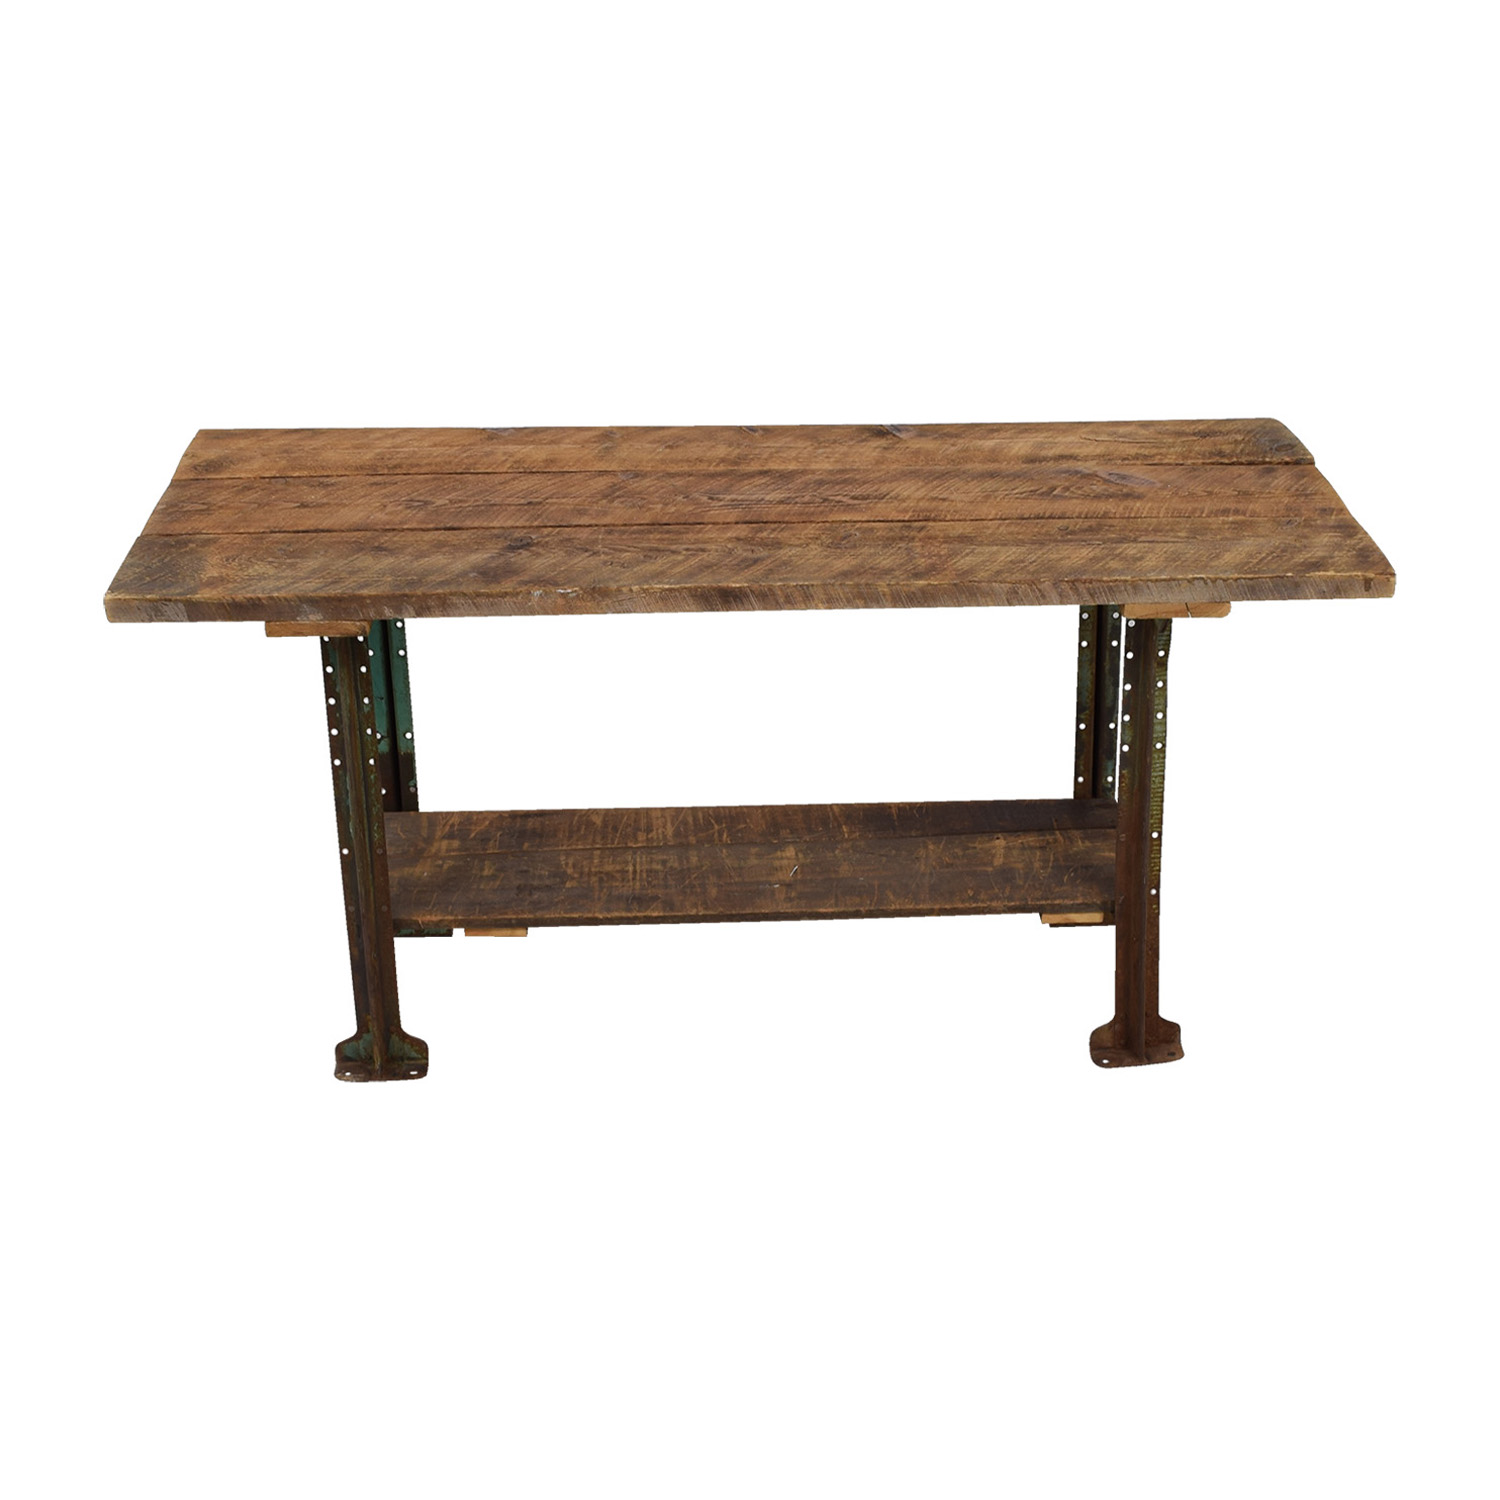 shop Brooklyn Flea Market Rustic Reclaimed Wood Table Brooklyn Flea Market Tables